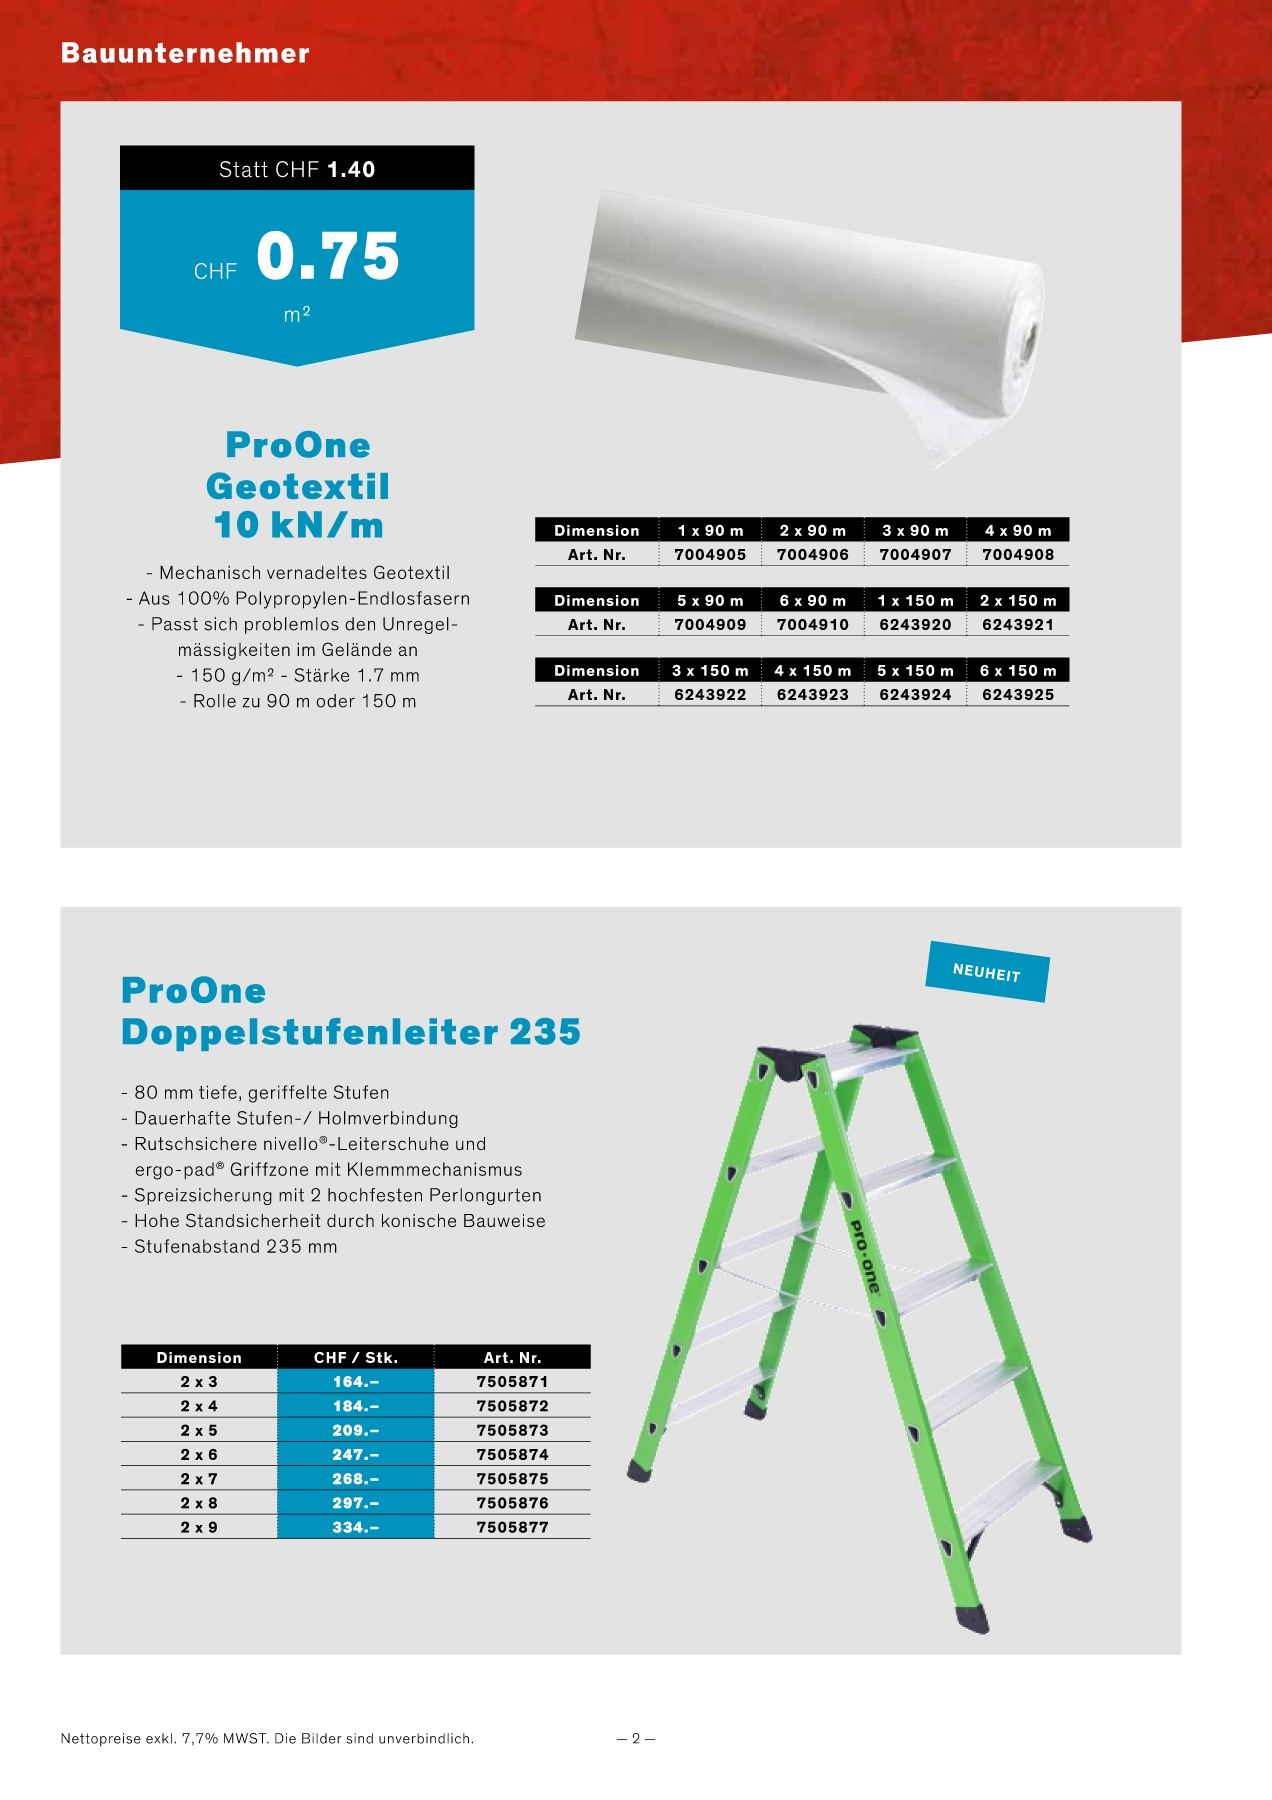 be4638b4d Broschuere_Promo_Fruehling_2018_DCH Pages 1 - 40 - Text Version | AnyFlip